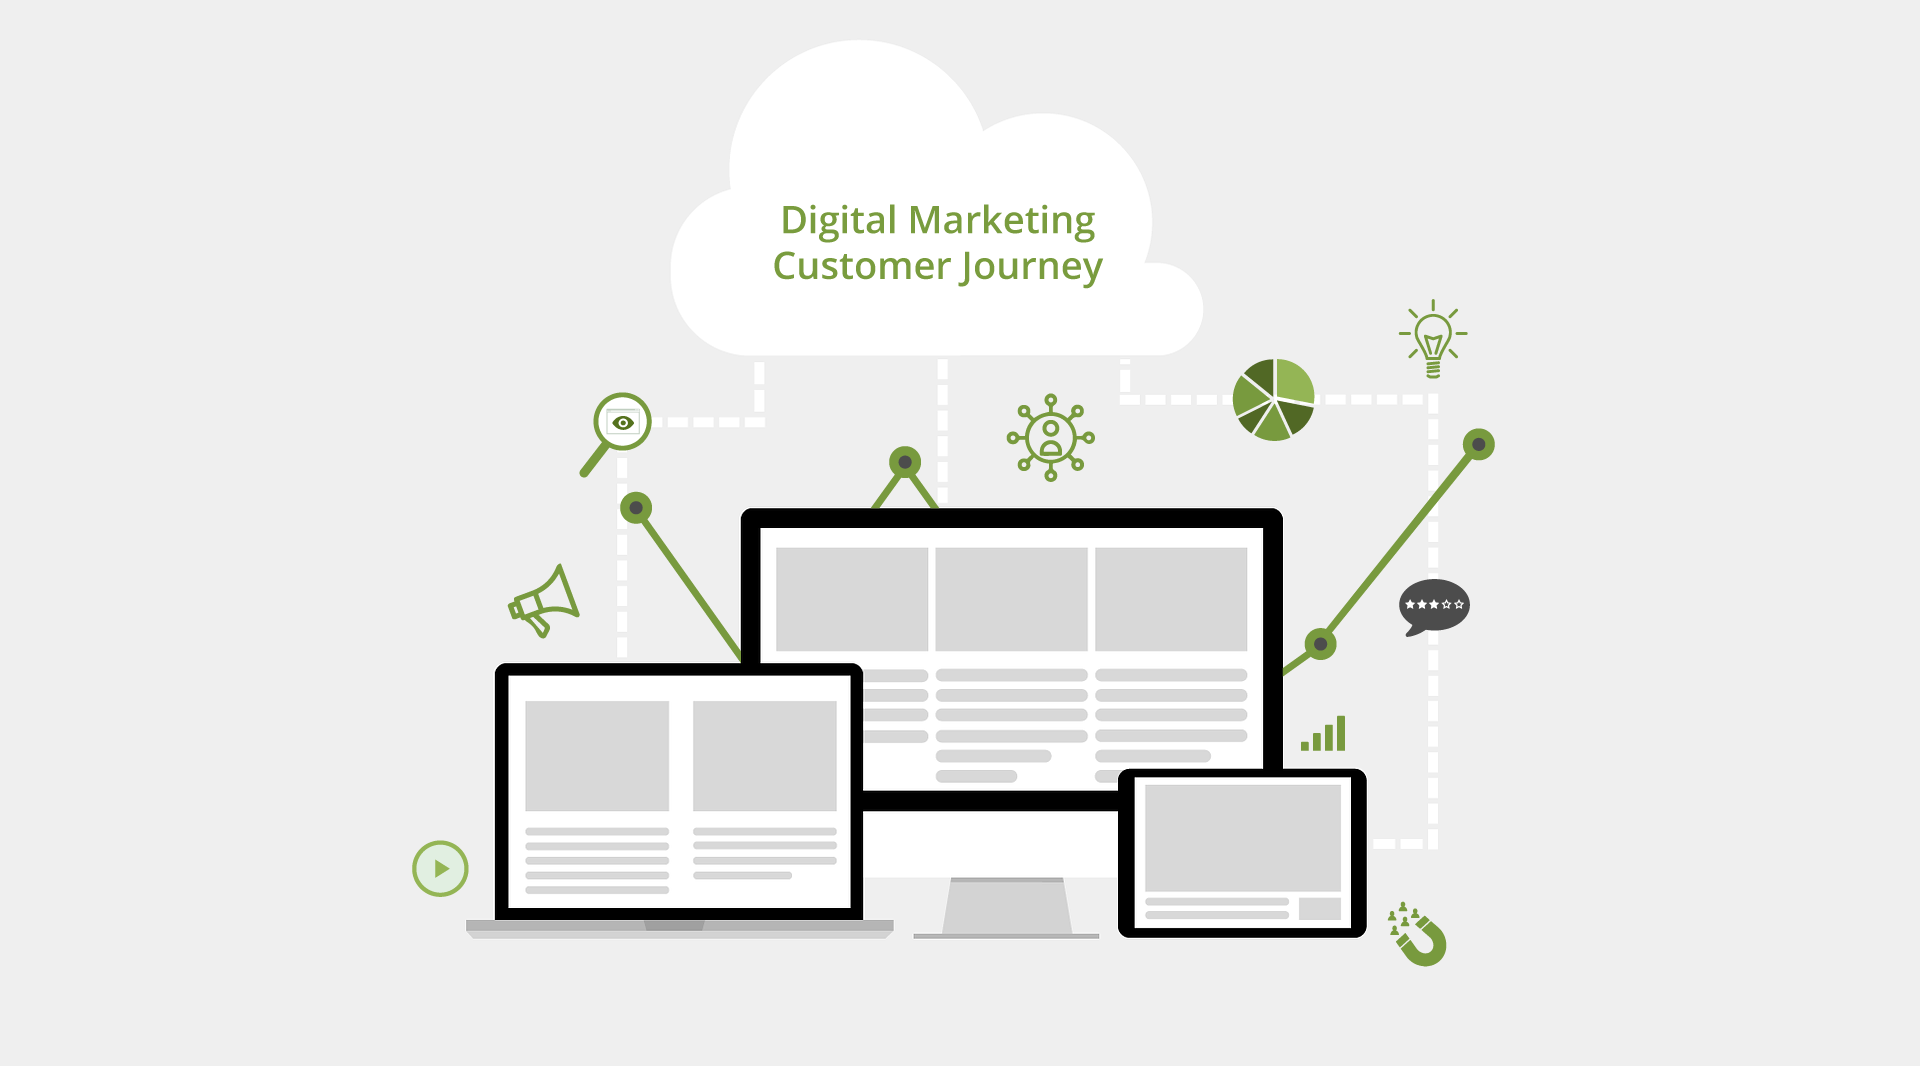 Digital Marketing Customer Journey